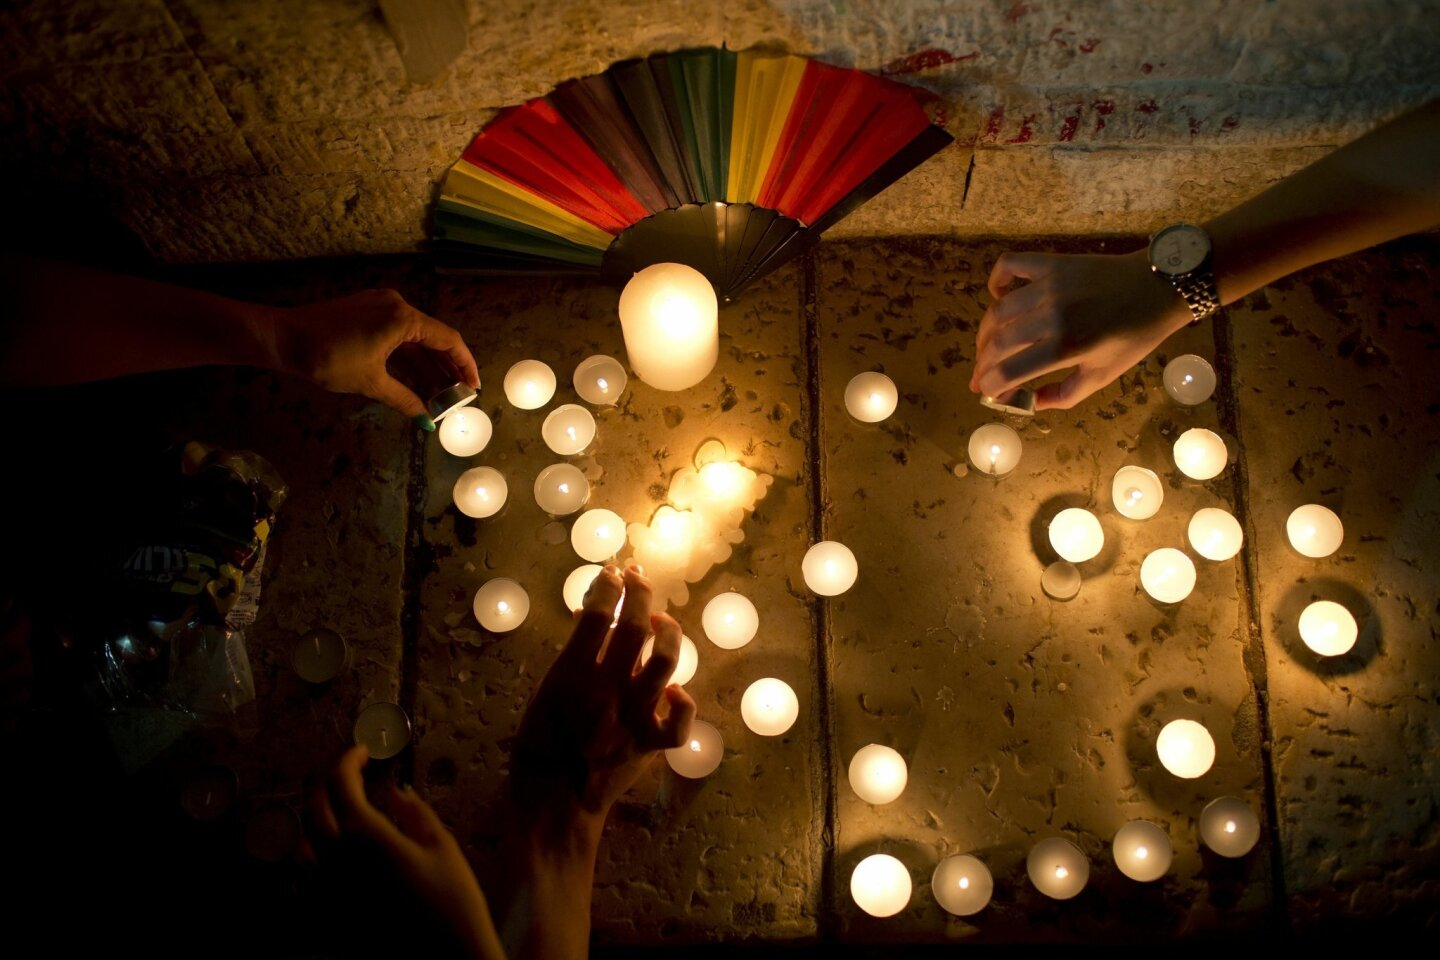 Members LGBT community light candles in solidarity with Florida's shooting attack victims, in Tel Aviv, Israel, Sunday, June 12, 2016.  The shooting attack in Orlando, Florida, USA, Sunday, left more than 50 people dead amid a multitude of events celebrating LGBT Pride Month. (AP Photo/Oded Balilty